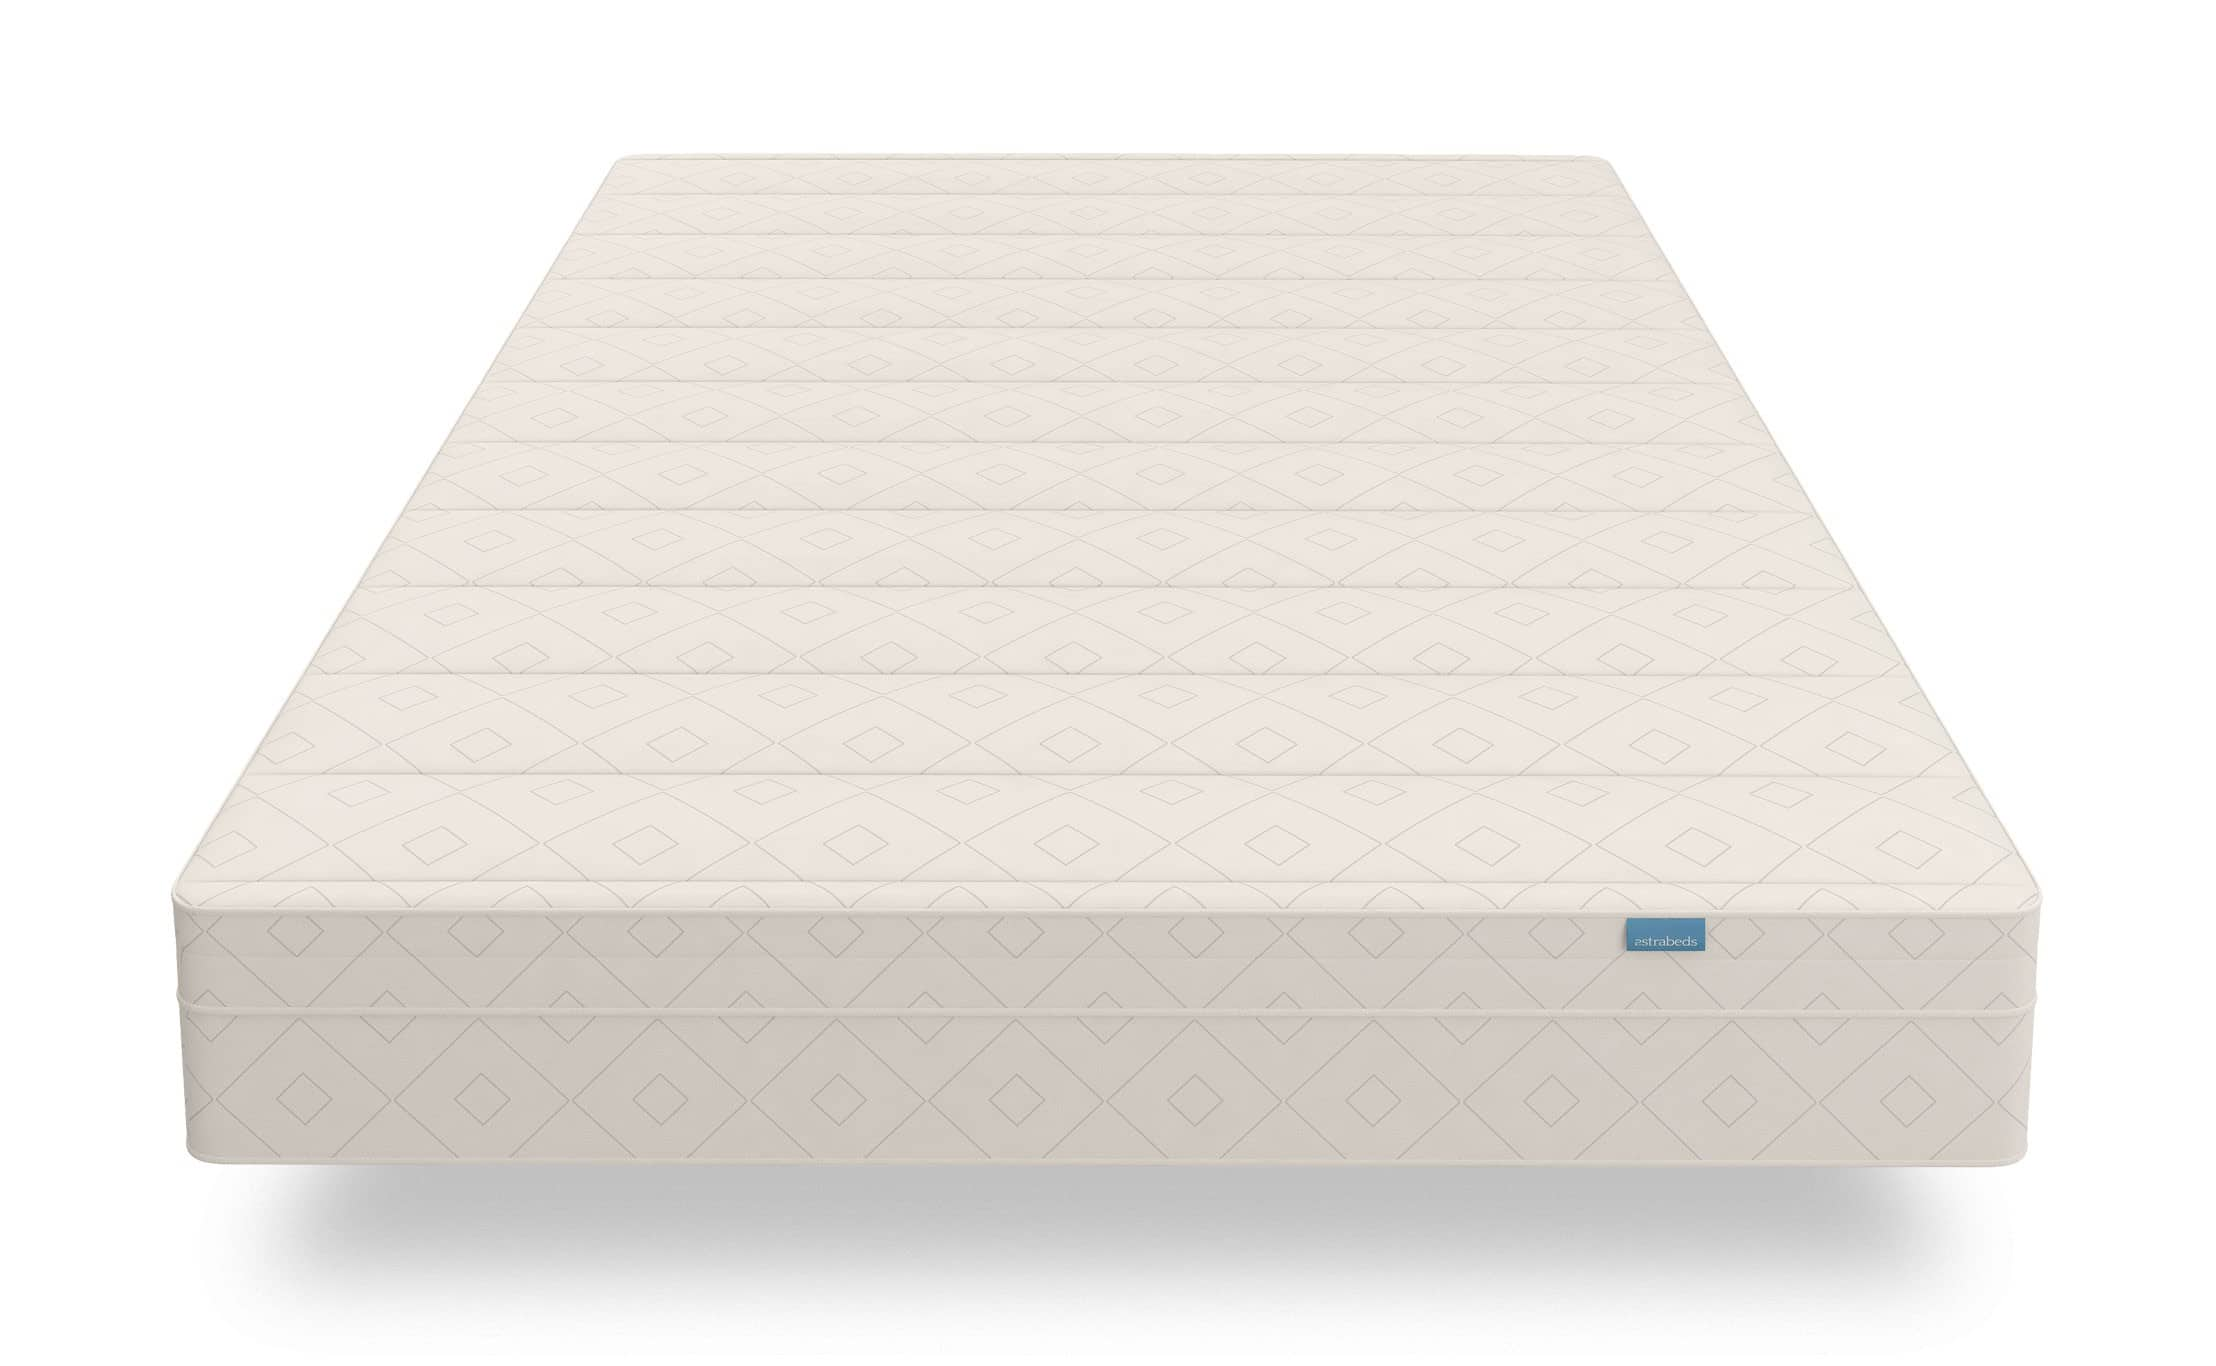 Latex Mattress Companies Reviews Of Latex Beds Big Asses Sexy